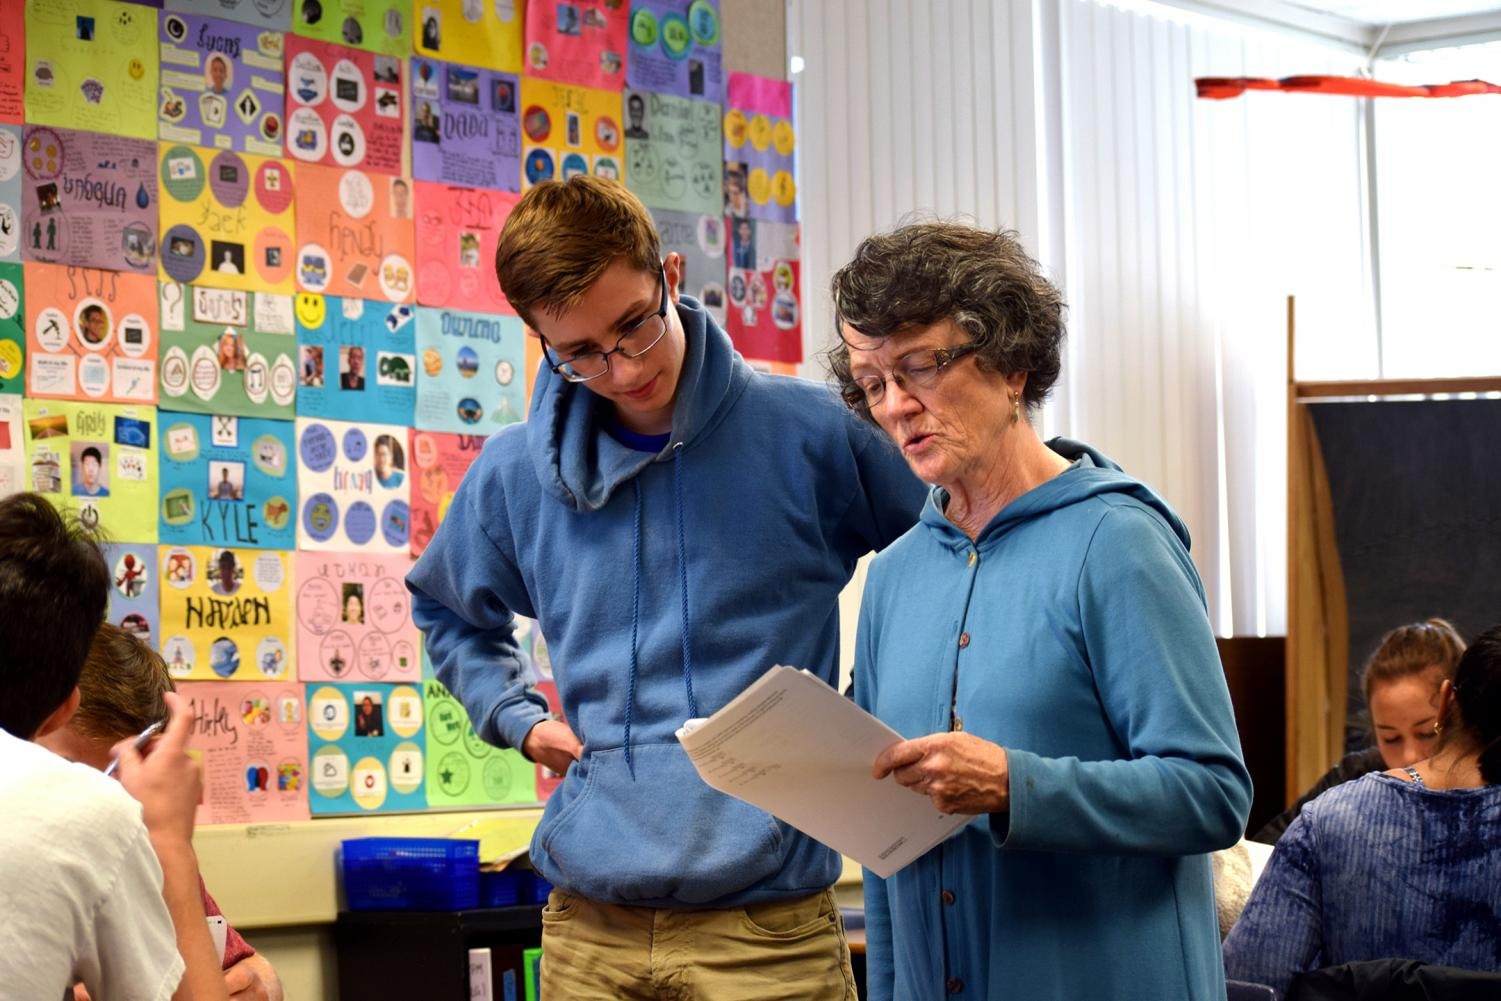 Math teacher Carol Evans helps senior Yann Sartori with test corrections. Known for her sharp wit and tough love, Evans worked to instill a love of learning in her students by prioritizing process over product. Francesca Fallow.